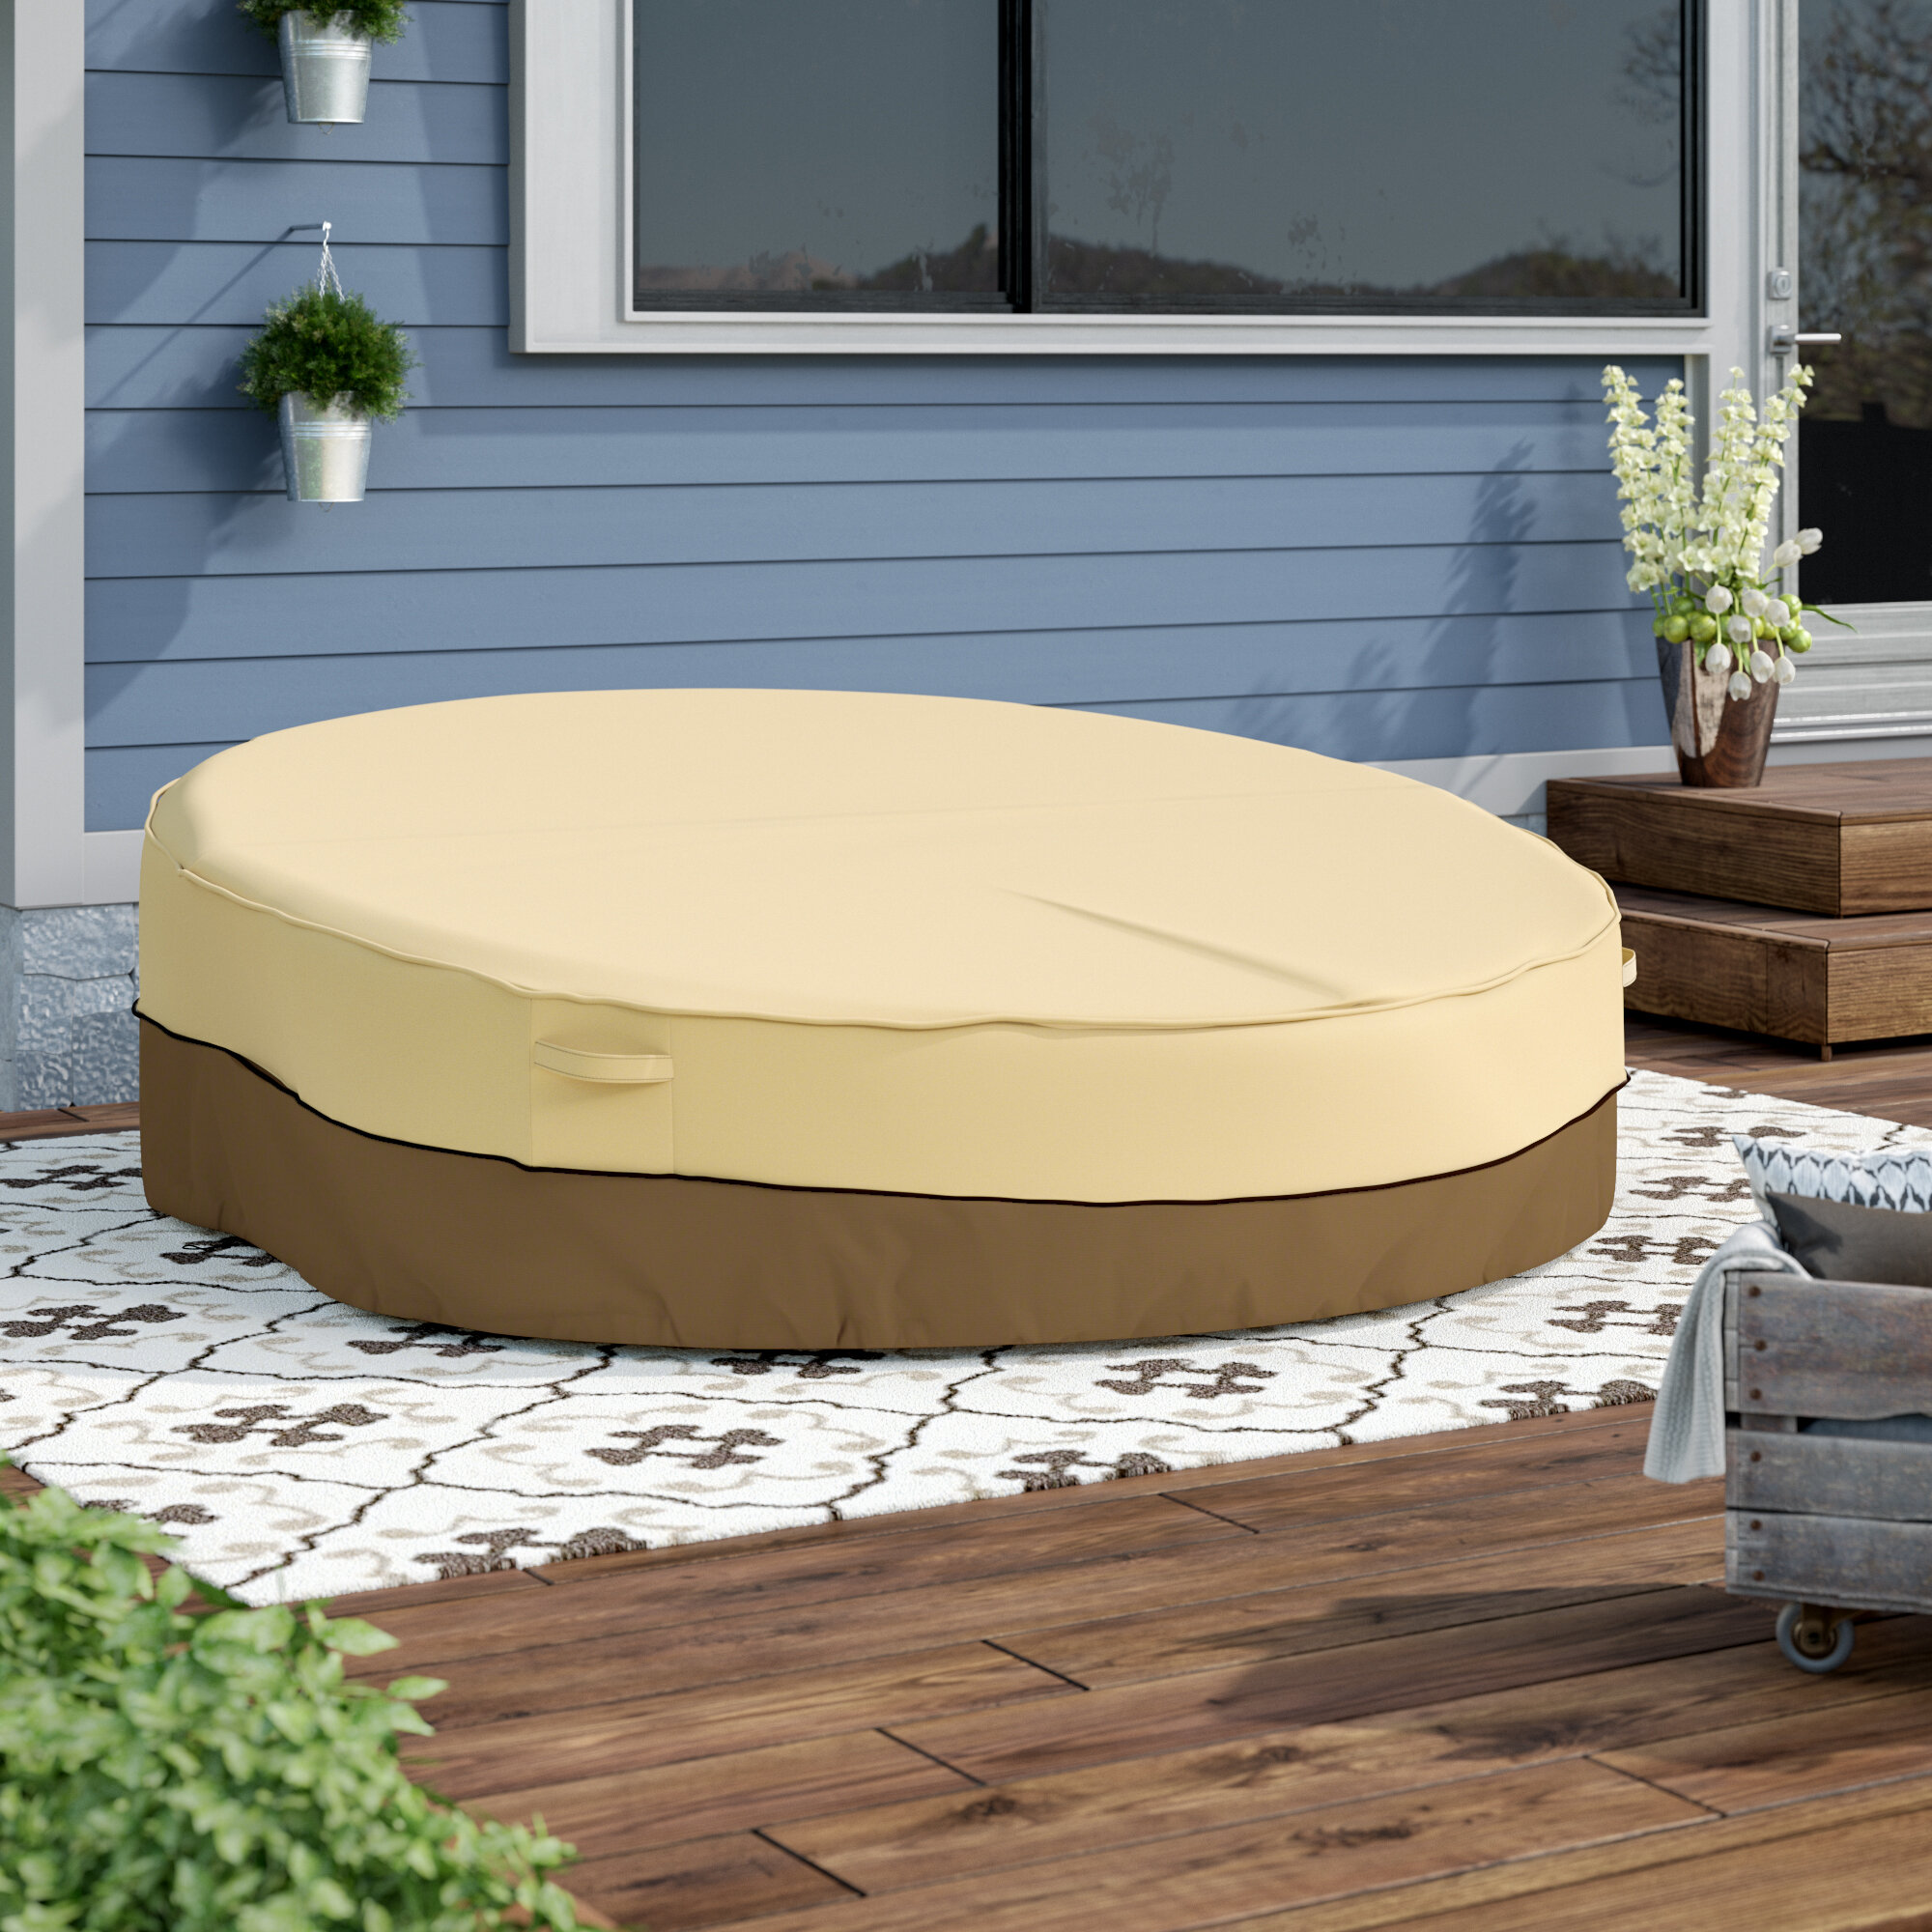 Arlmont Co Perry Water Resistant Daybed Cover Cover Reviews Wayfair